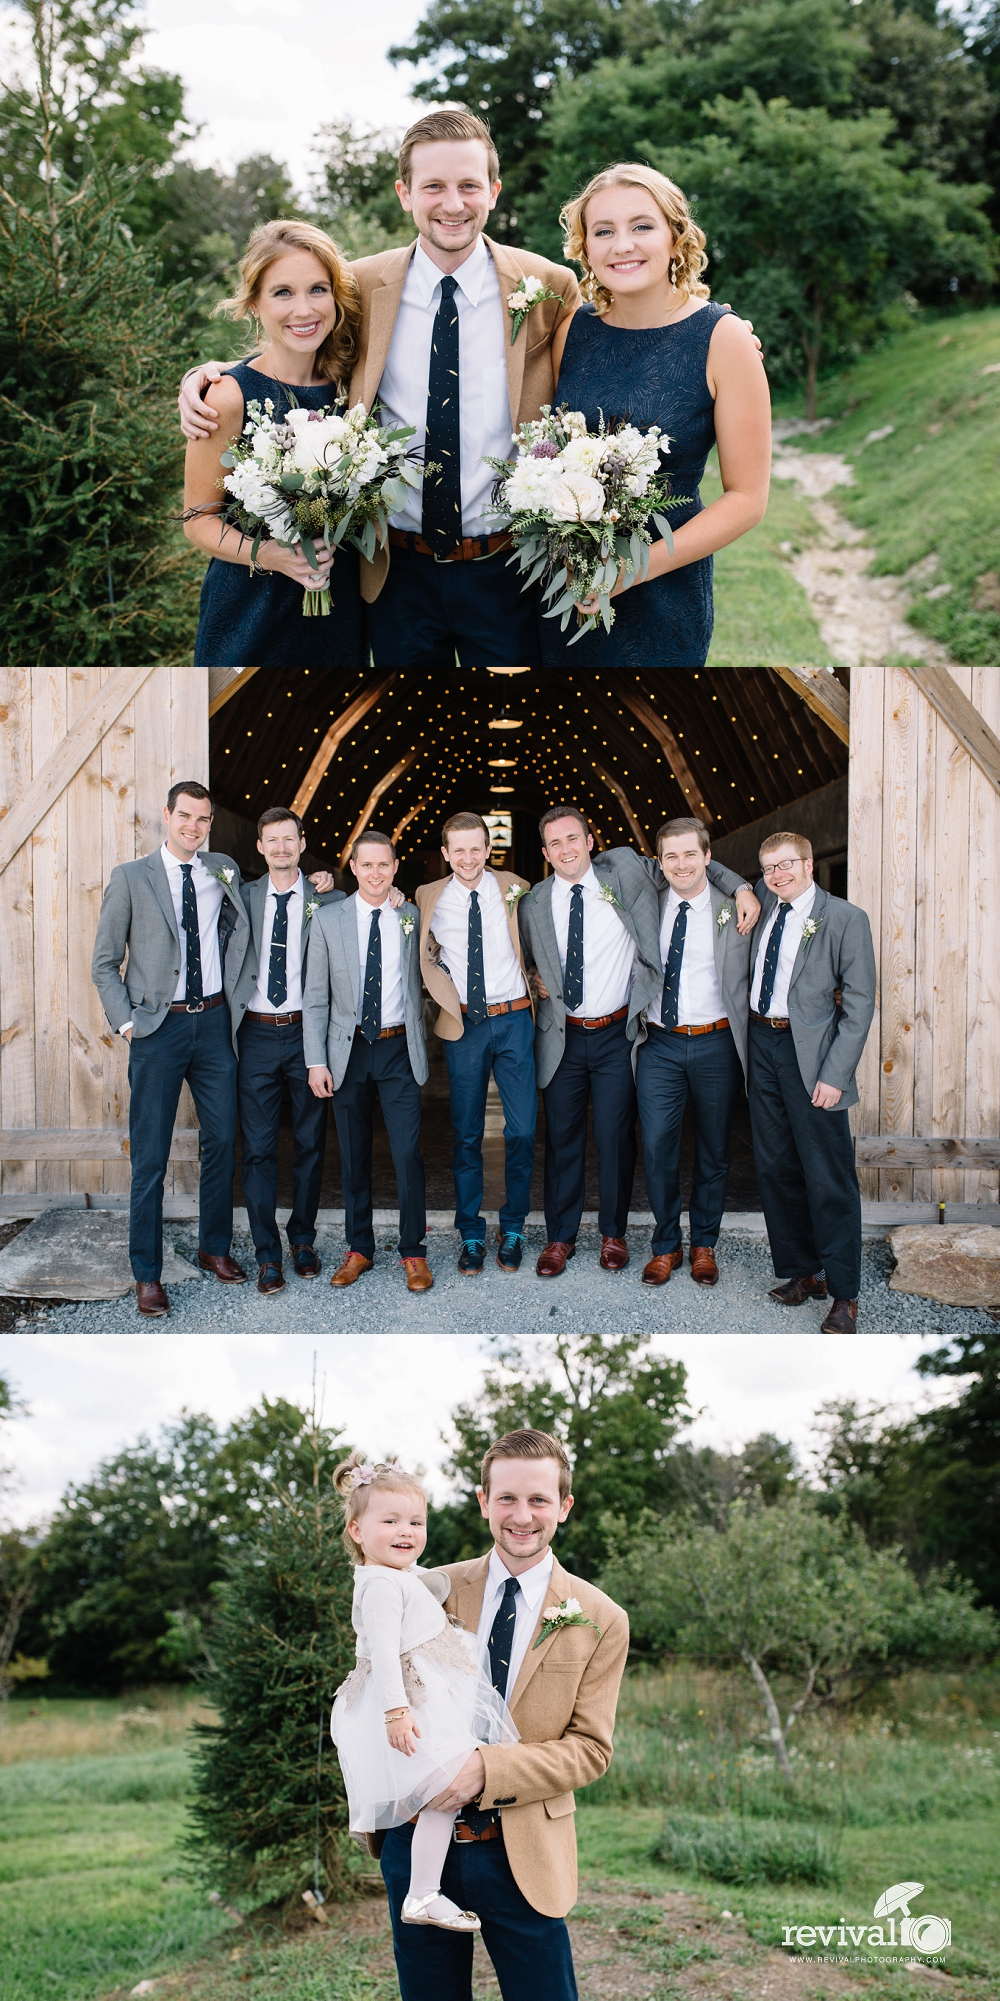 Chelsea + Herb's Overlook Barn Mountain Wedding in Banner Elk, North Carolina www.revivalphotography.com